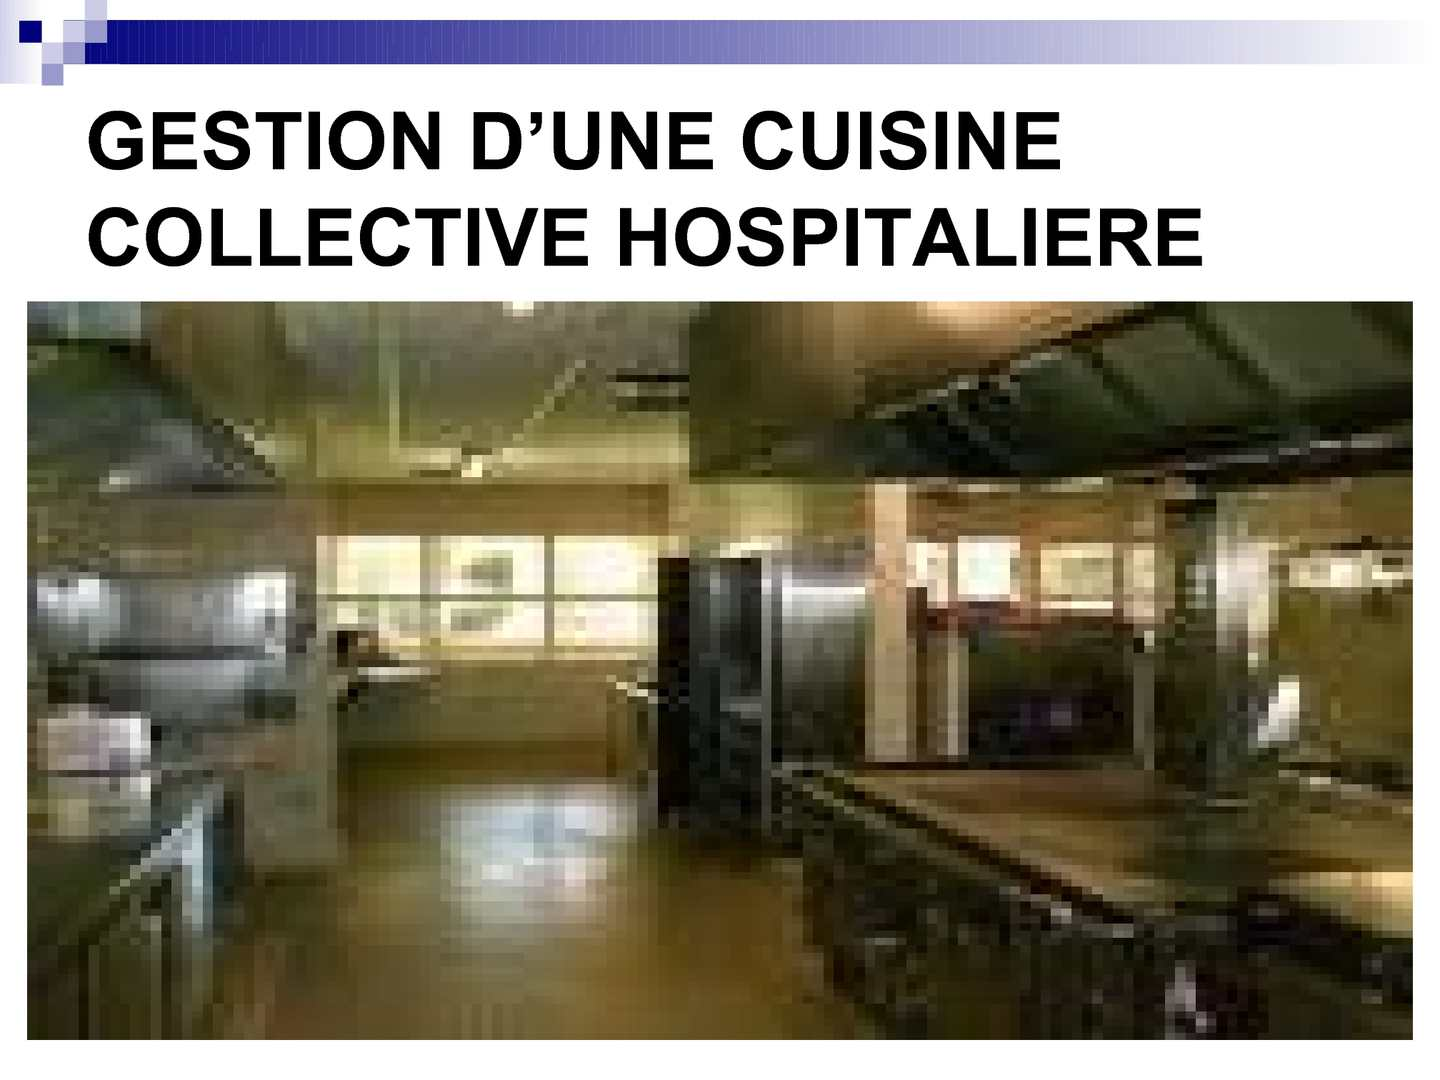 Calam o gestion d 39 une cuisine hospitaliere - Equipement cuisine collective ...